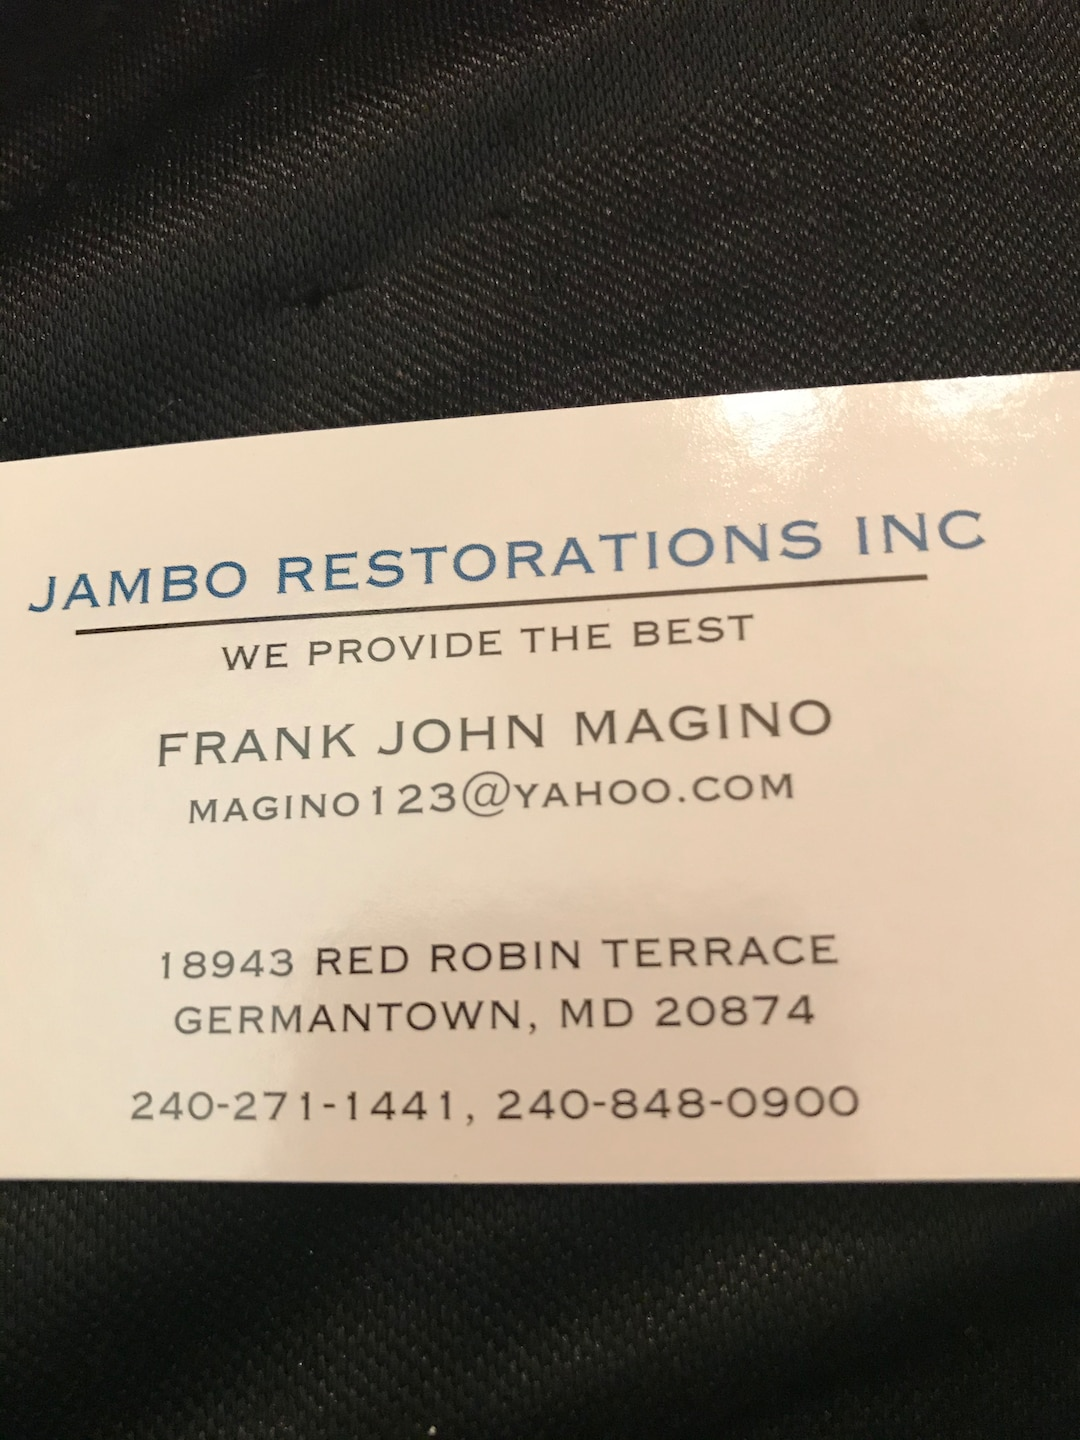 JAMBO RESTORATIONS INC